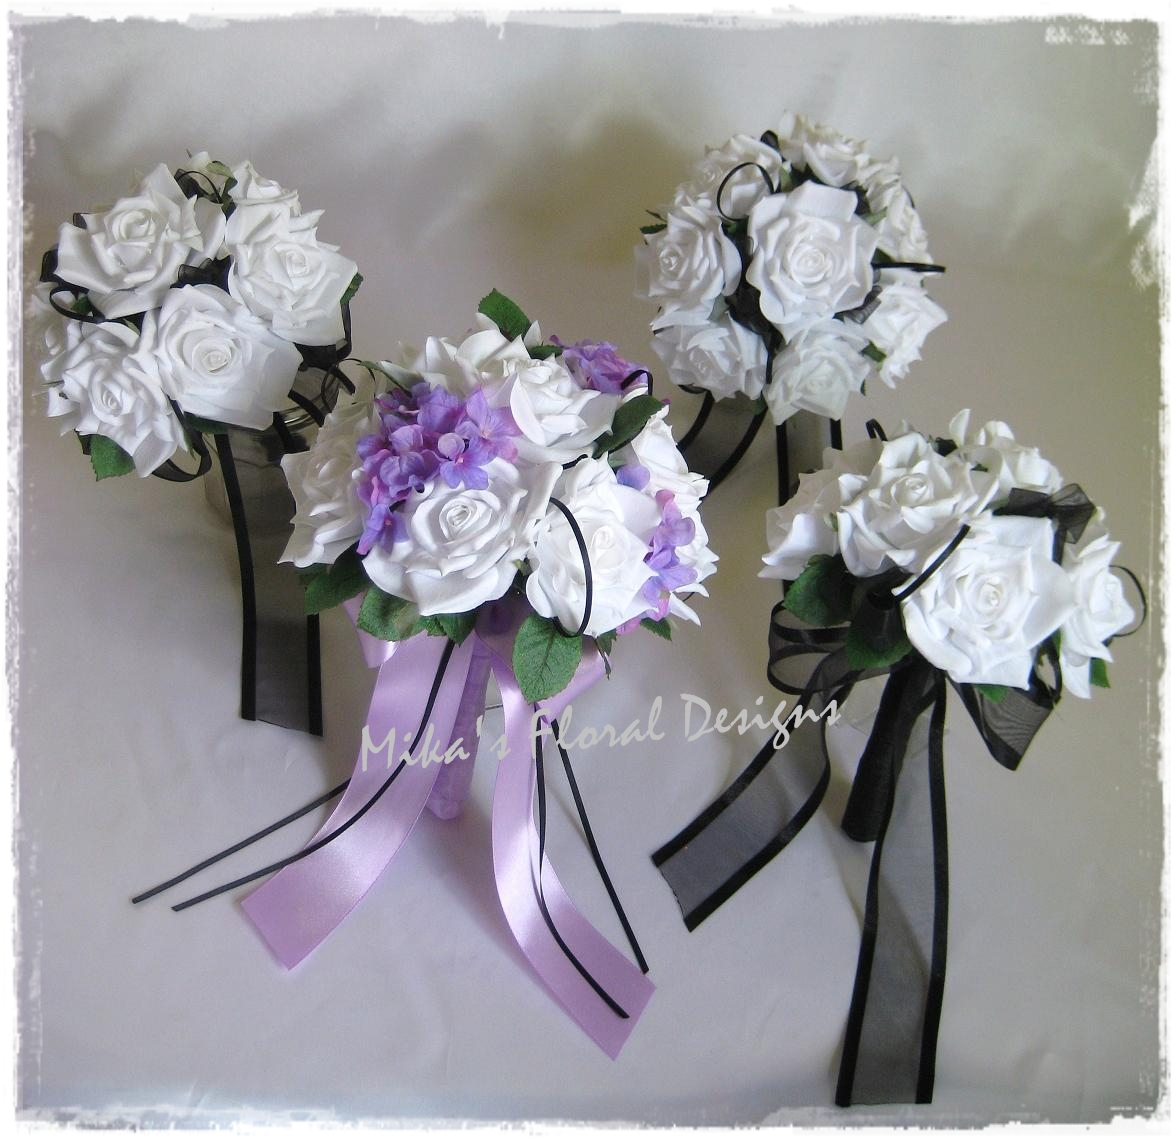 Artificial Wedding Flowers and Bouquets Australia 01 01 10 01 02 10